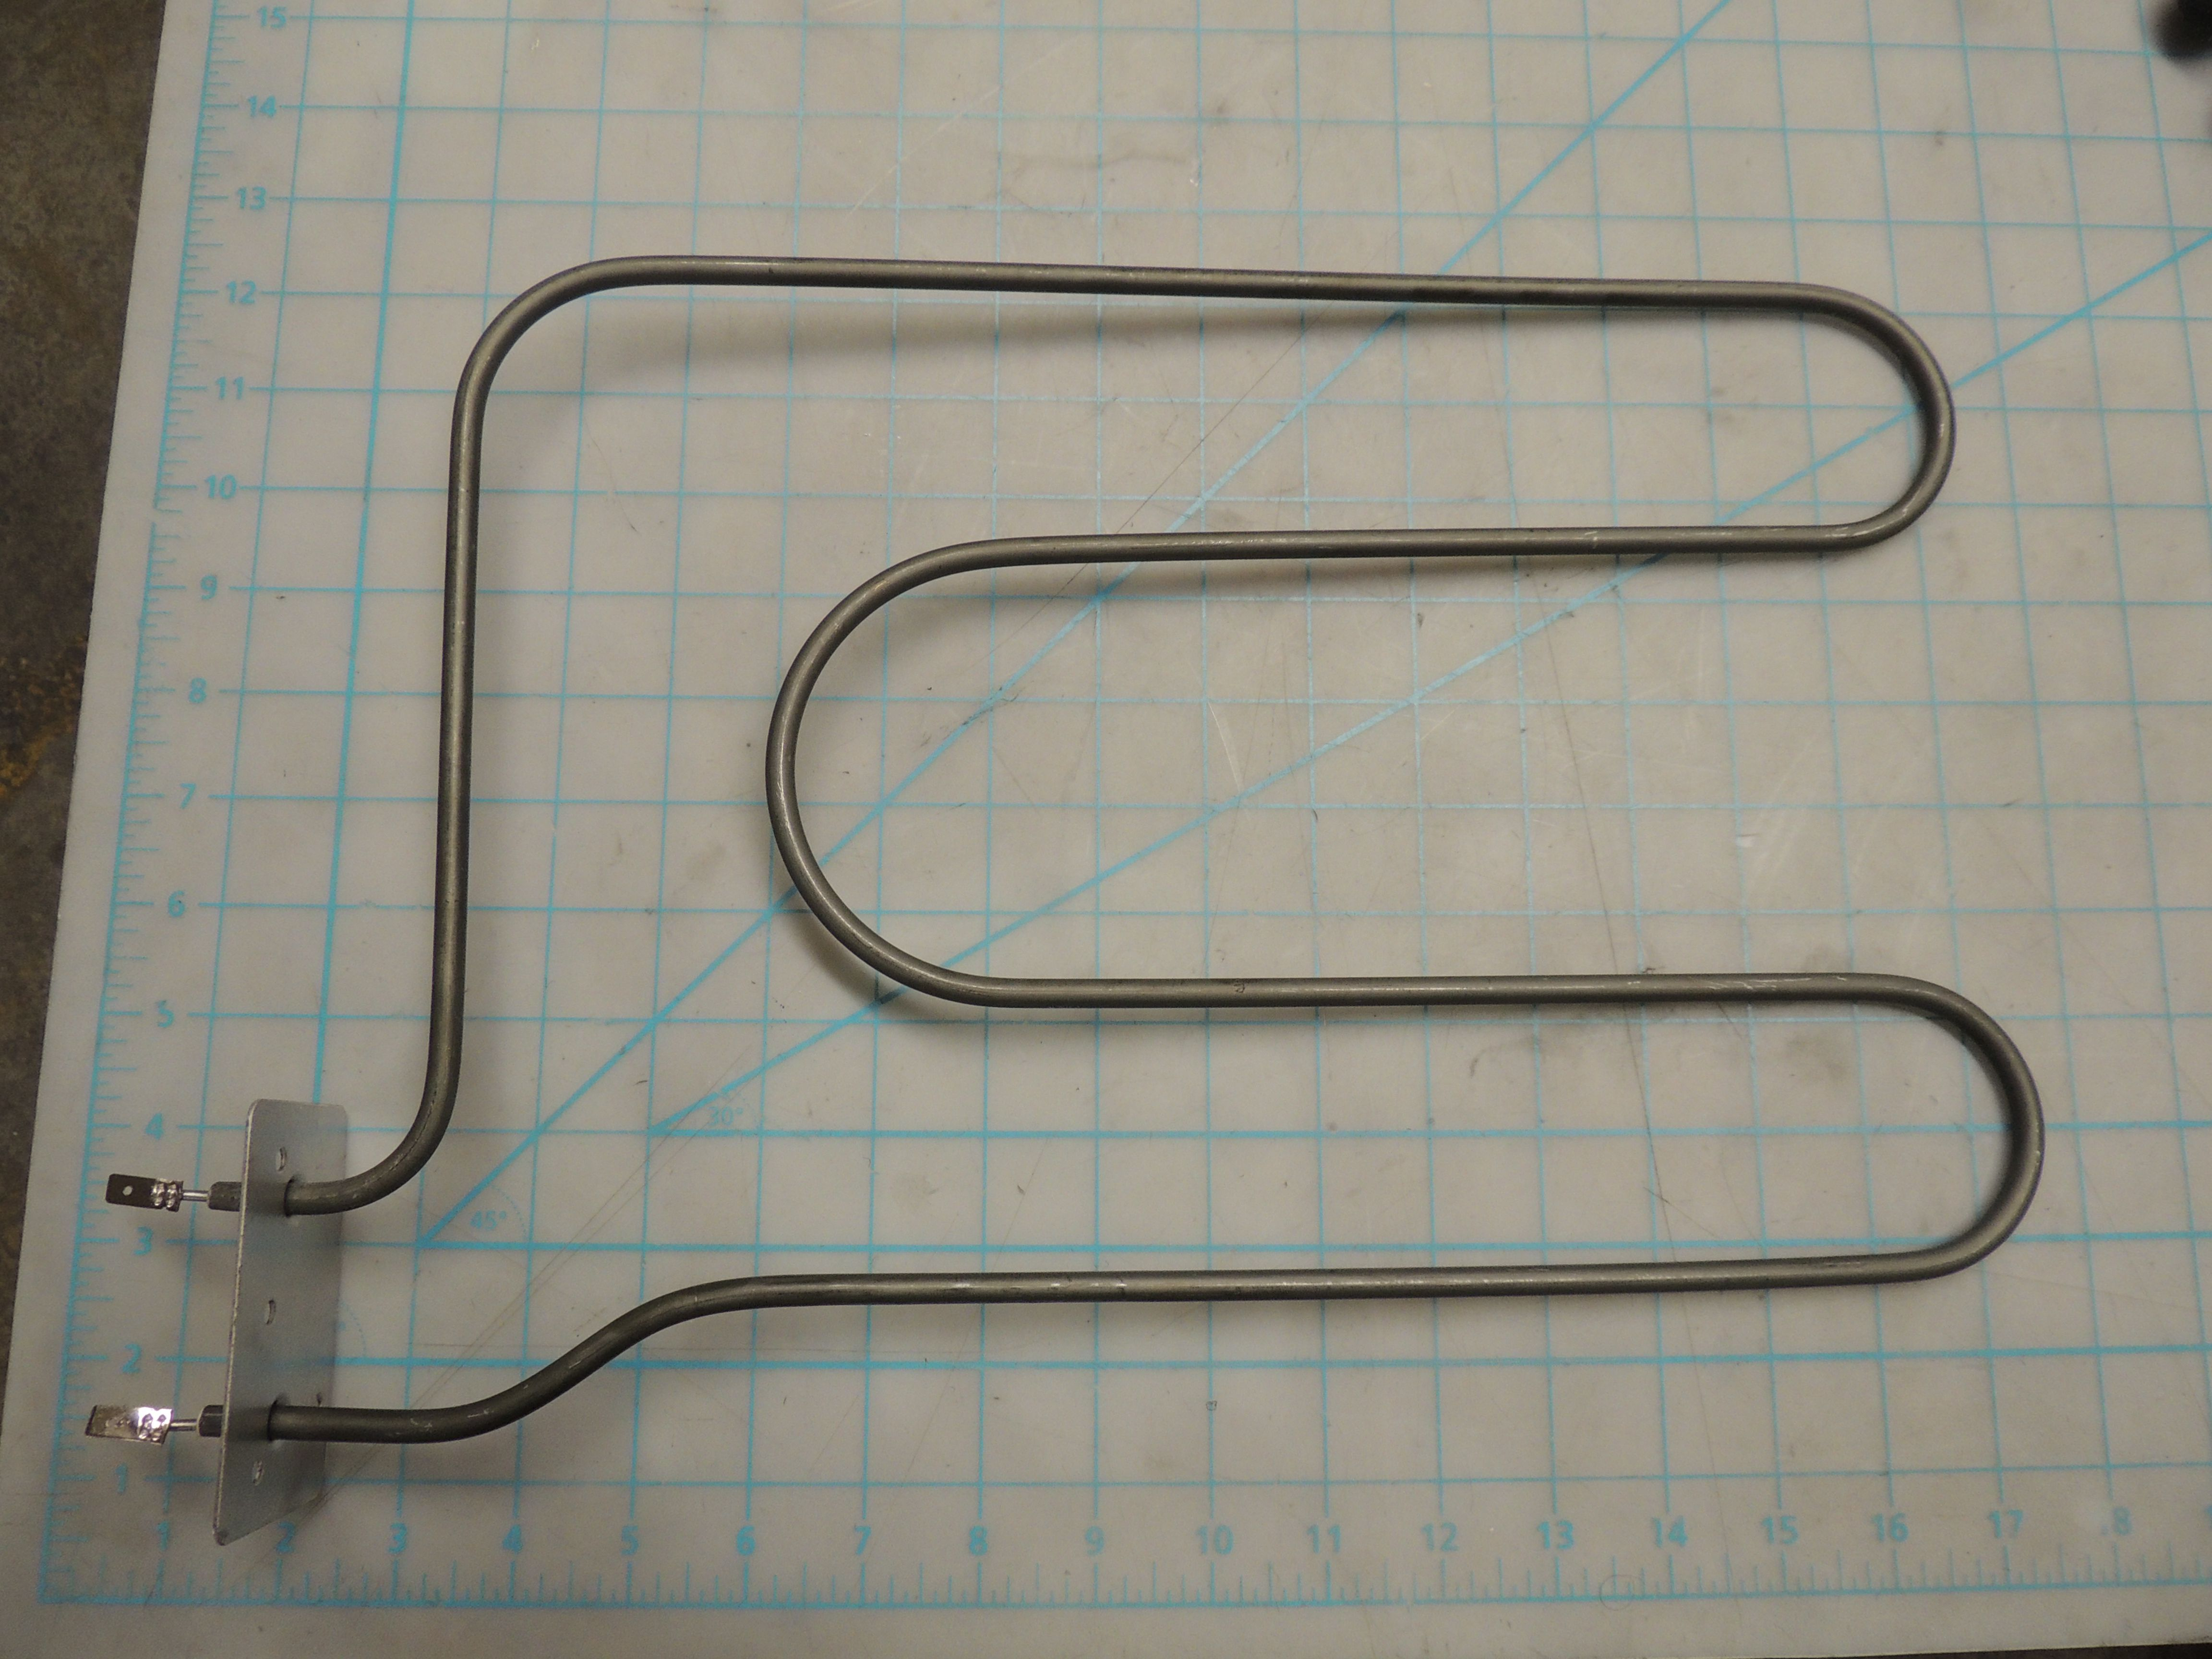 OVEN BROIL ELEMENT